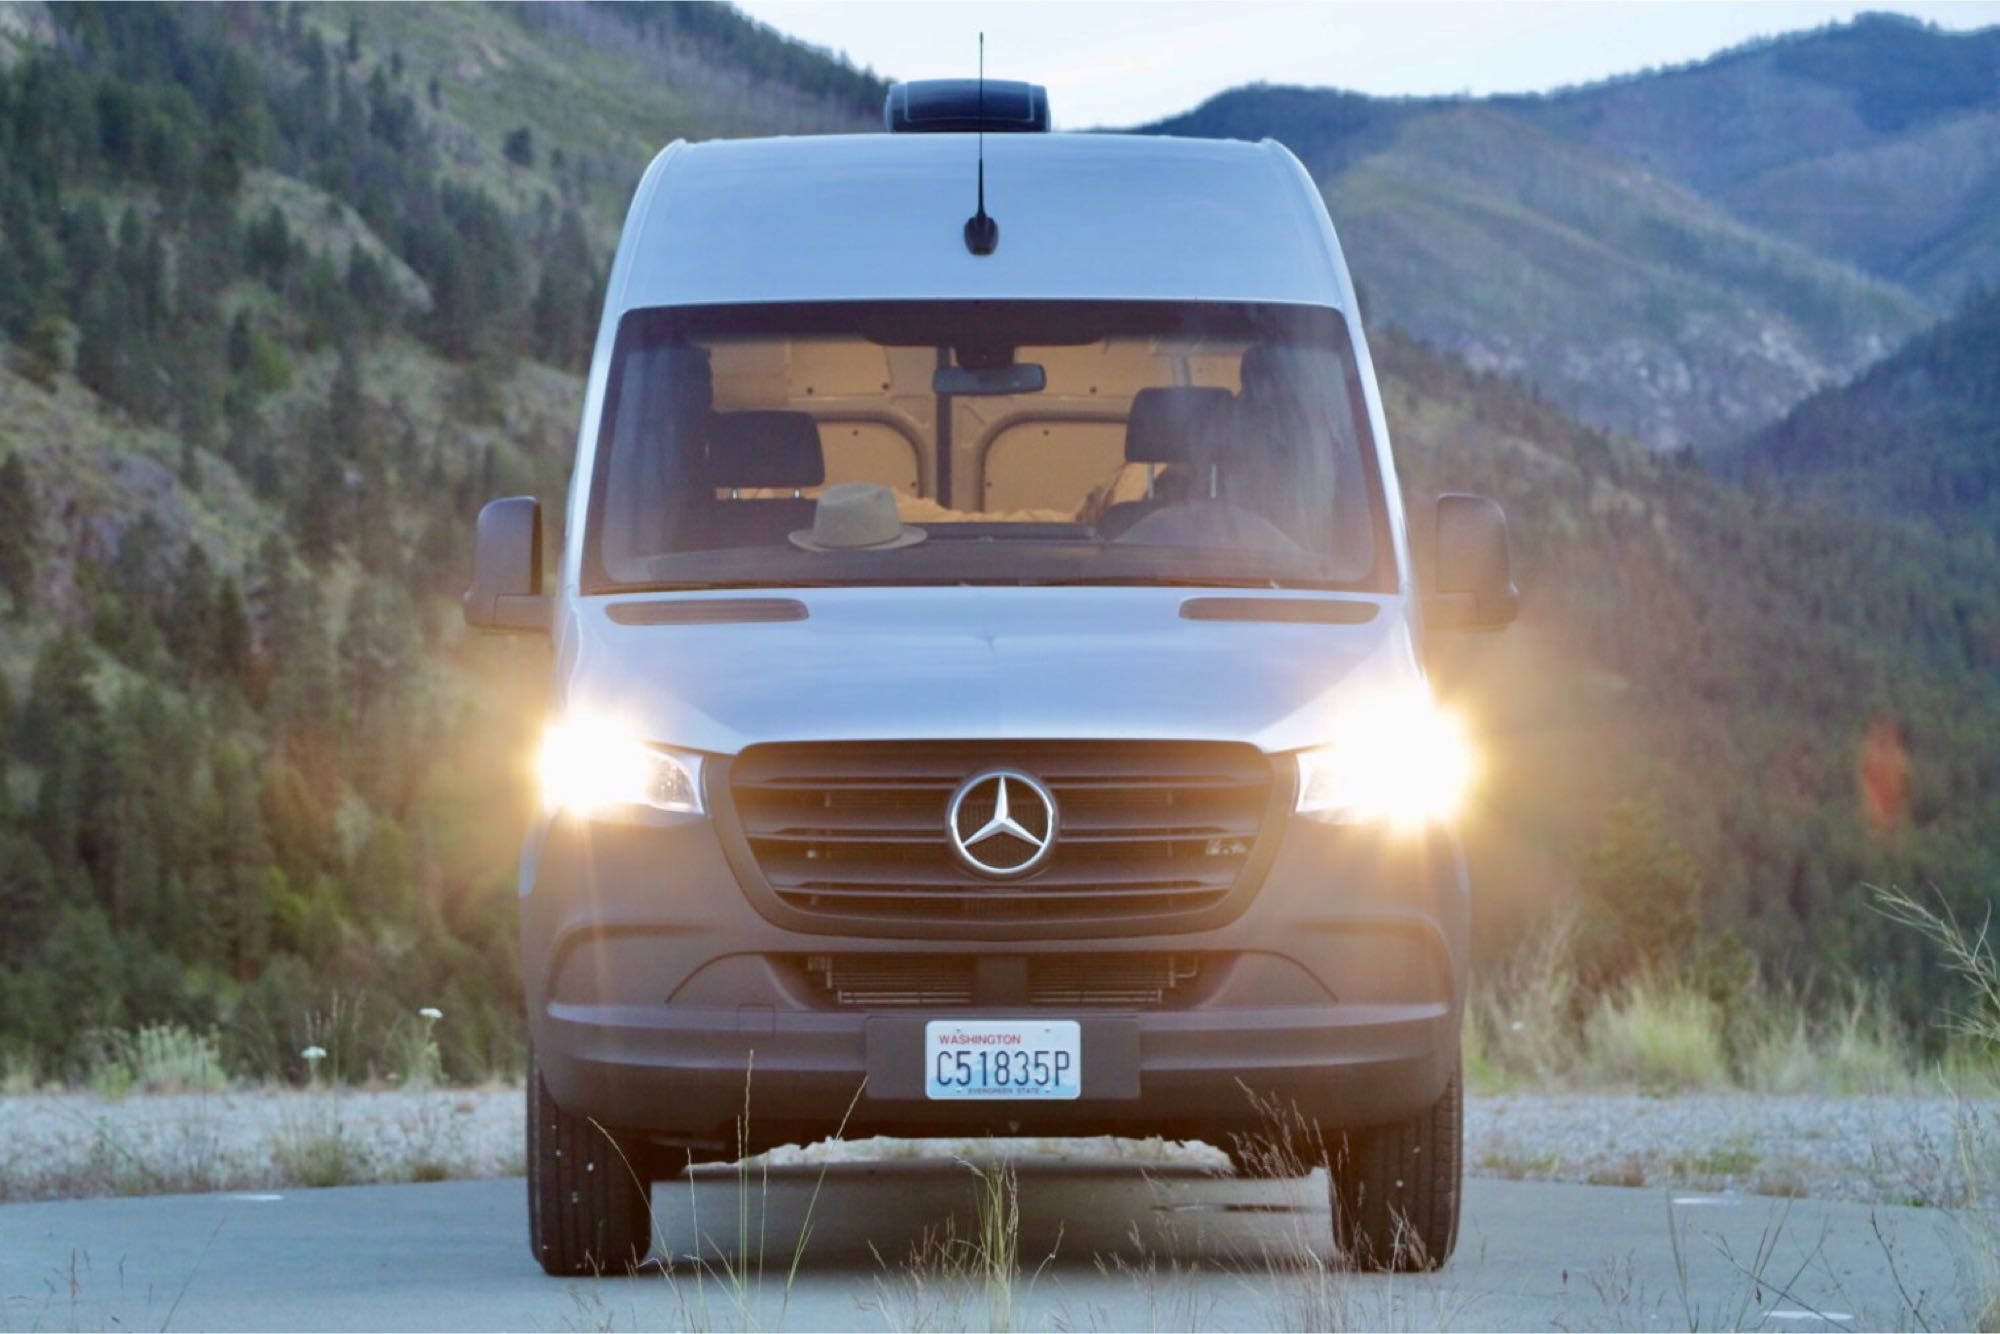 Built for adventure with all the comforts of home. Mercedes-Benz Sprinter 2019